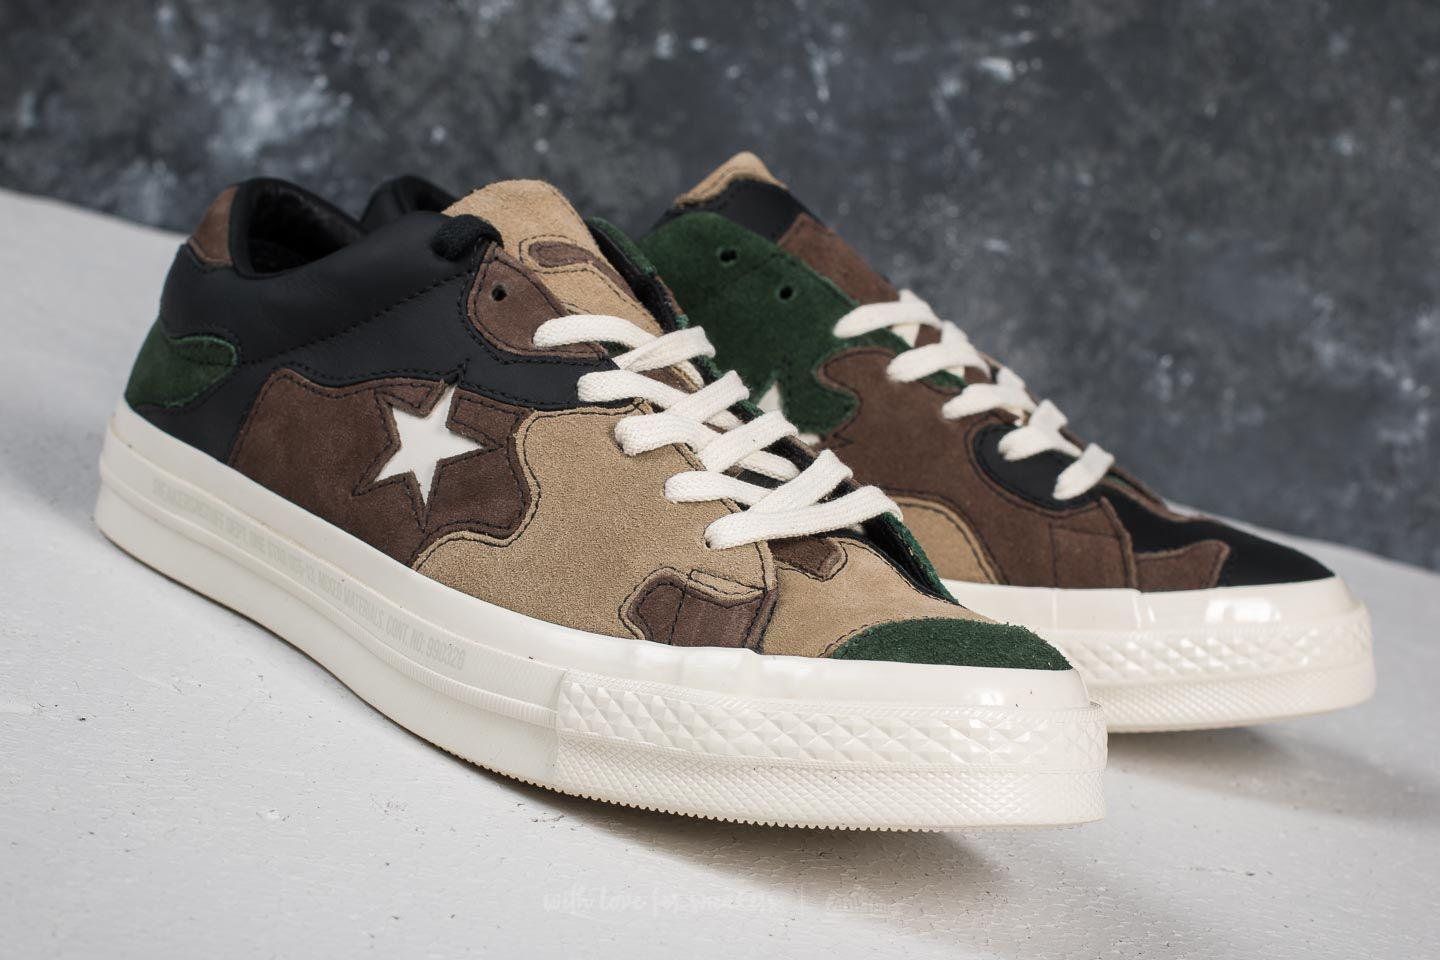 ca437e50a5c6 Lyst - Converse X Sneakersnstuff One Star Ox Canteen  Black Forest ...